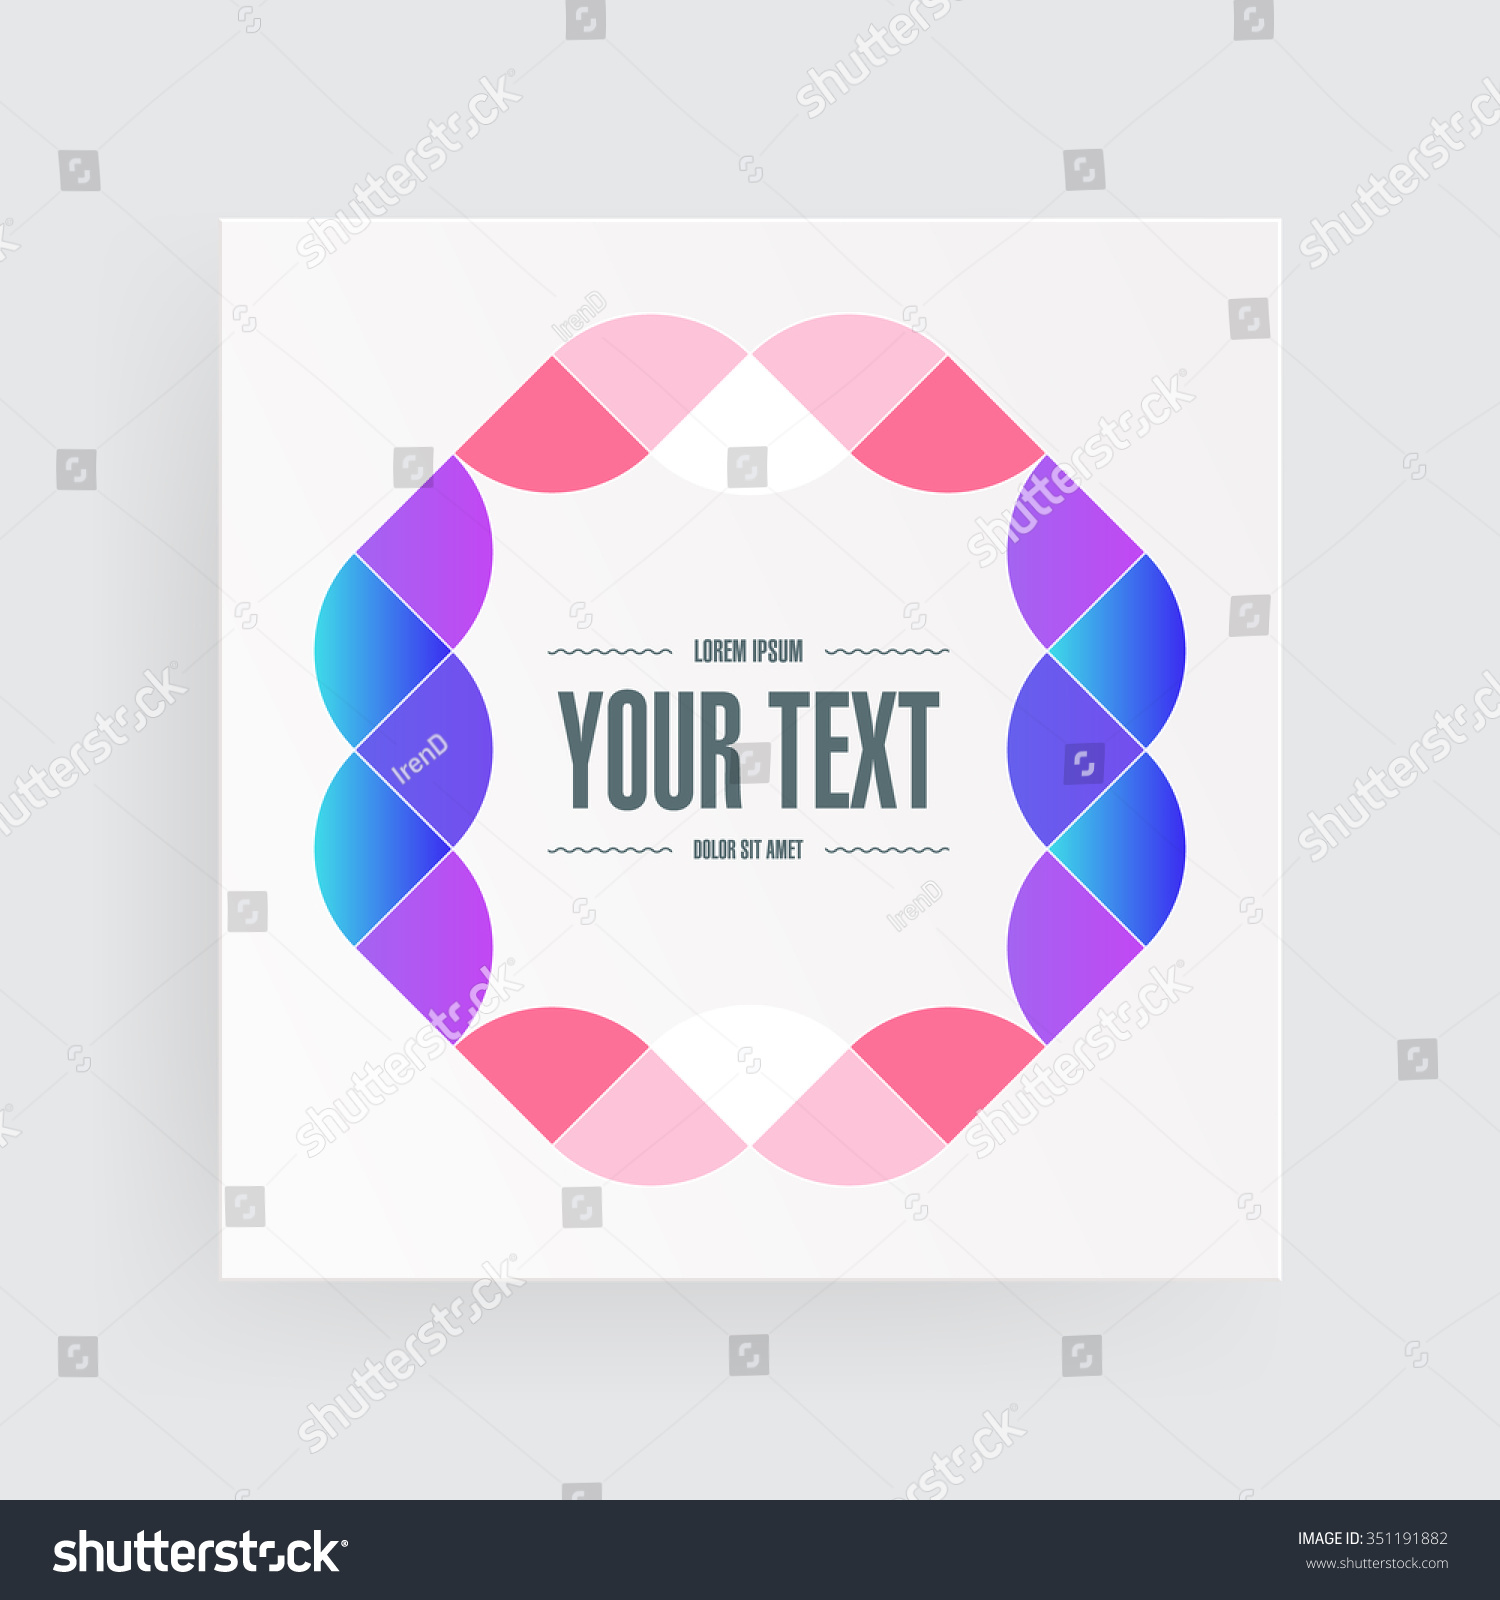 Poster design eps - Minimal Light Square Poster Design With Abstract Ornament And Your Text Eps 10 Stock Vector